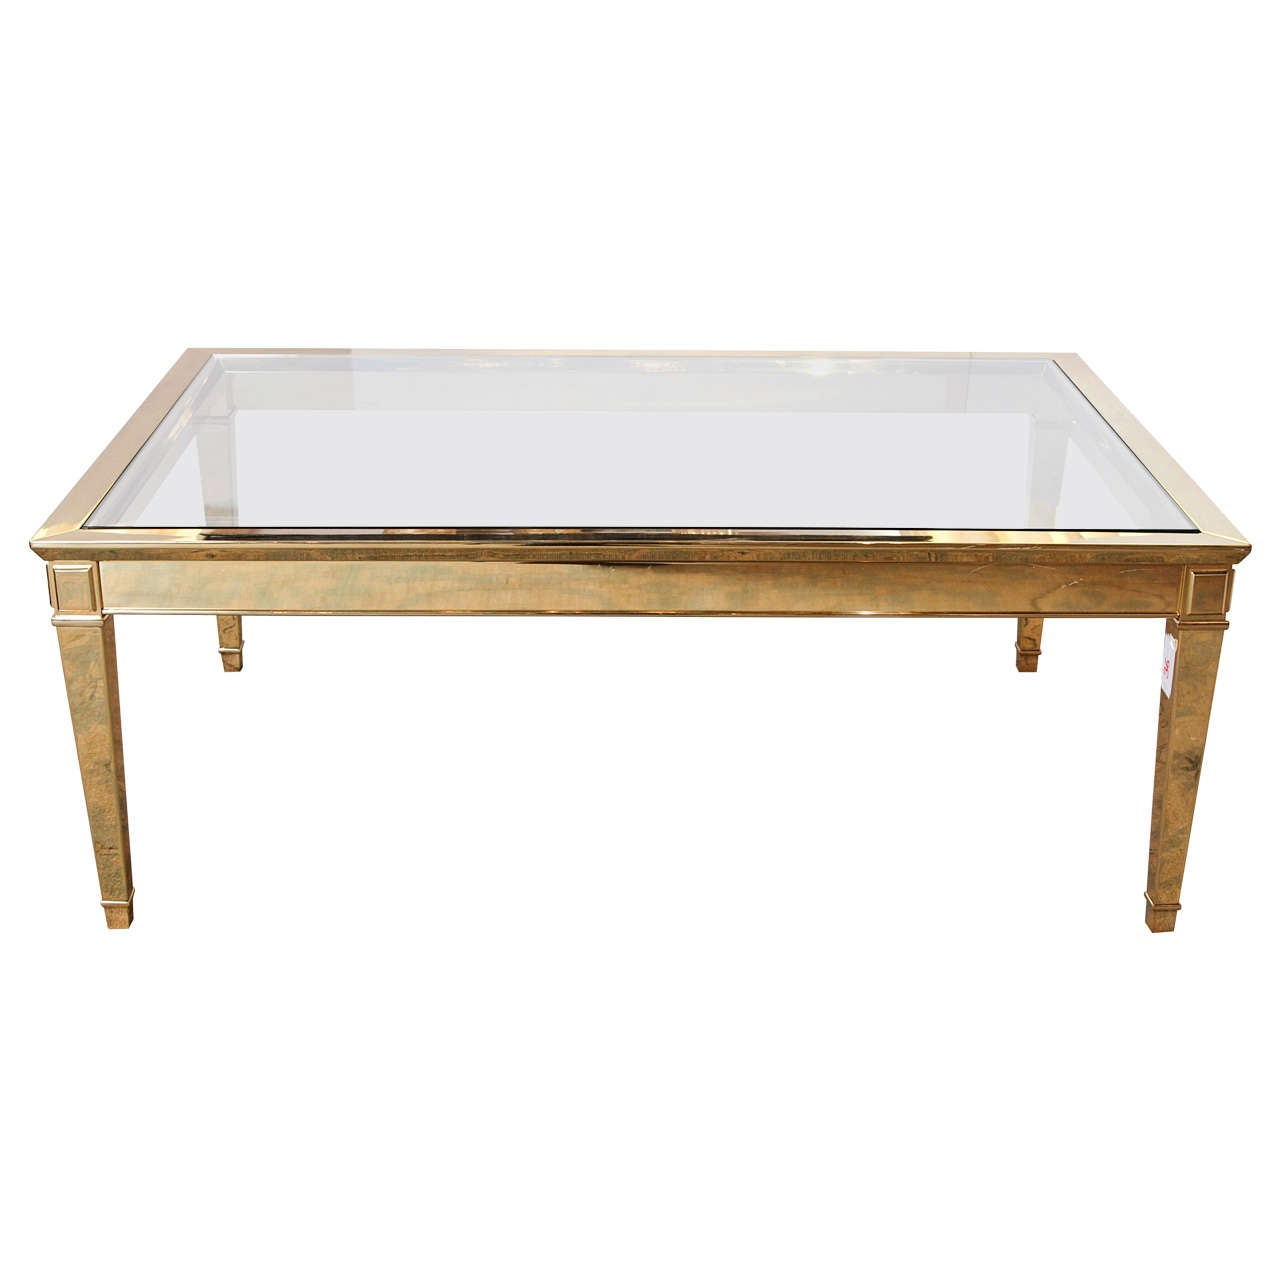 Tuscan Style Coffee Table Coffee Table And Tuscan Style Coffee Table 18th Century Tuscan